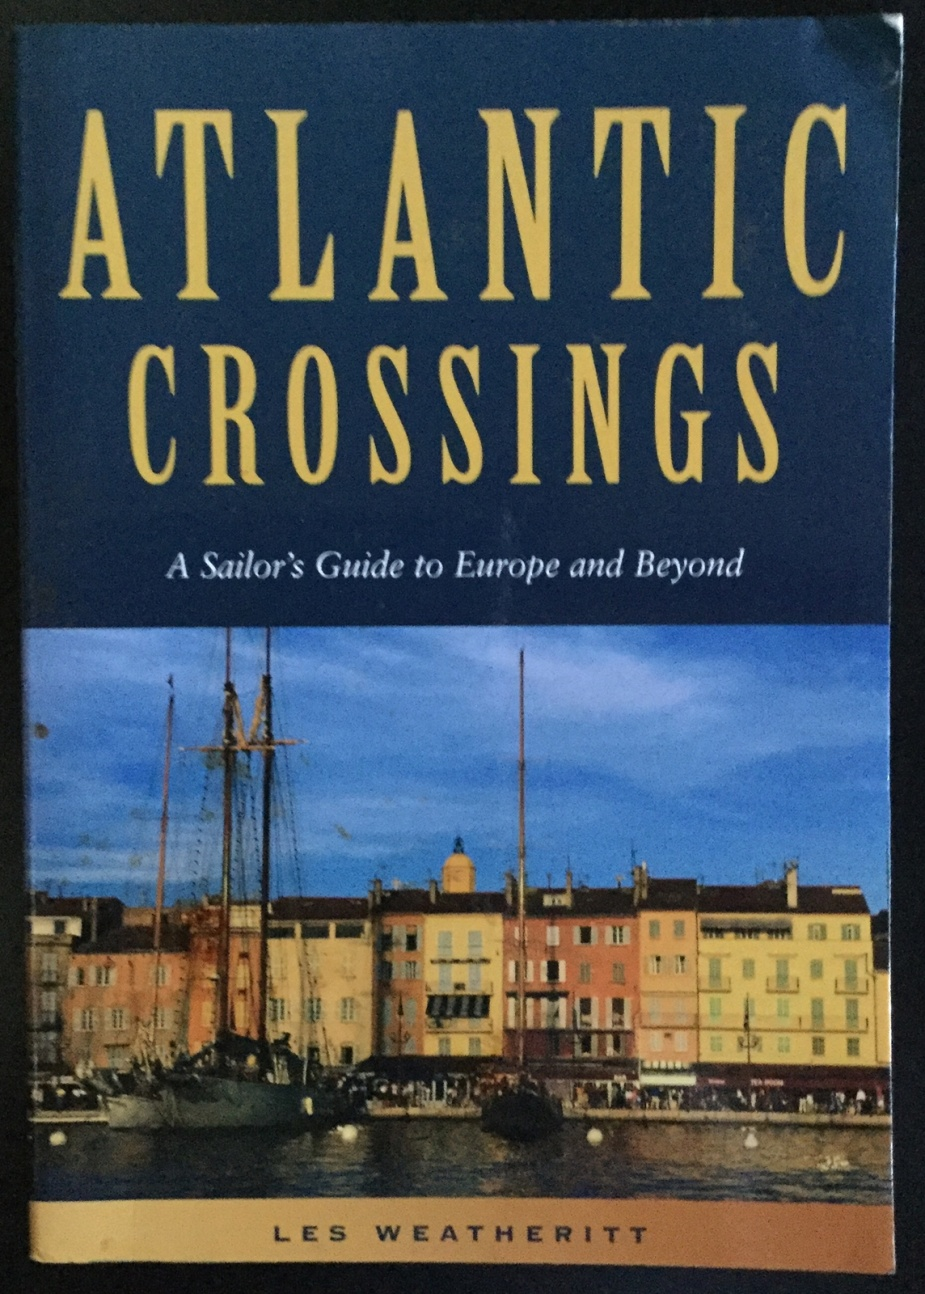 Click image for larger version  Name:Atlantic Crossings.jpg Views:58 Size:427.2 KB ID:176483